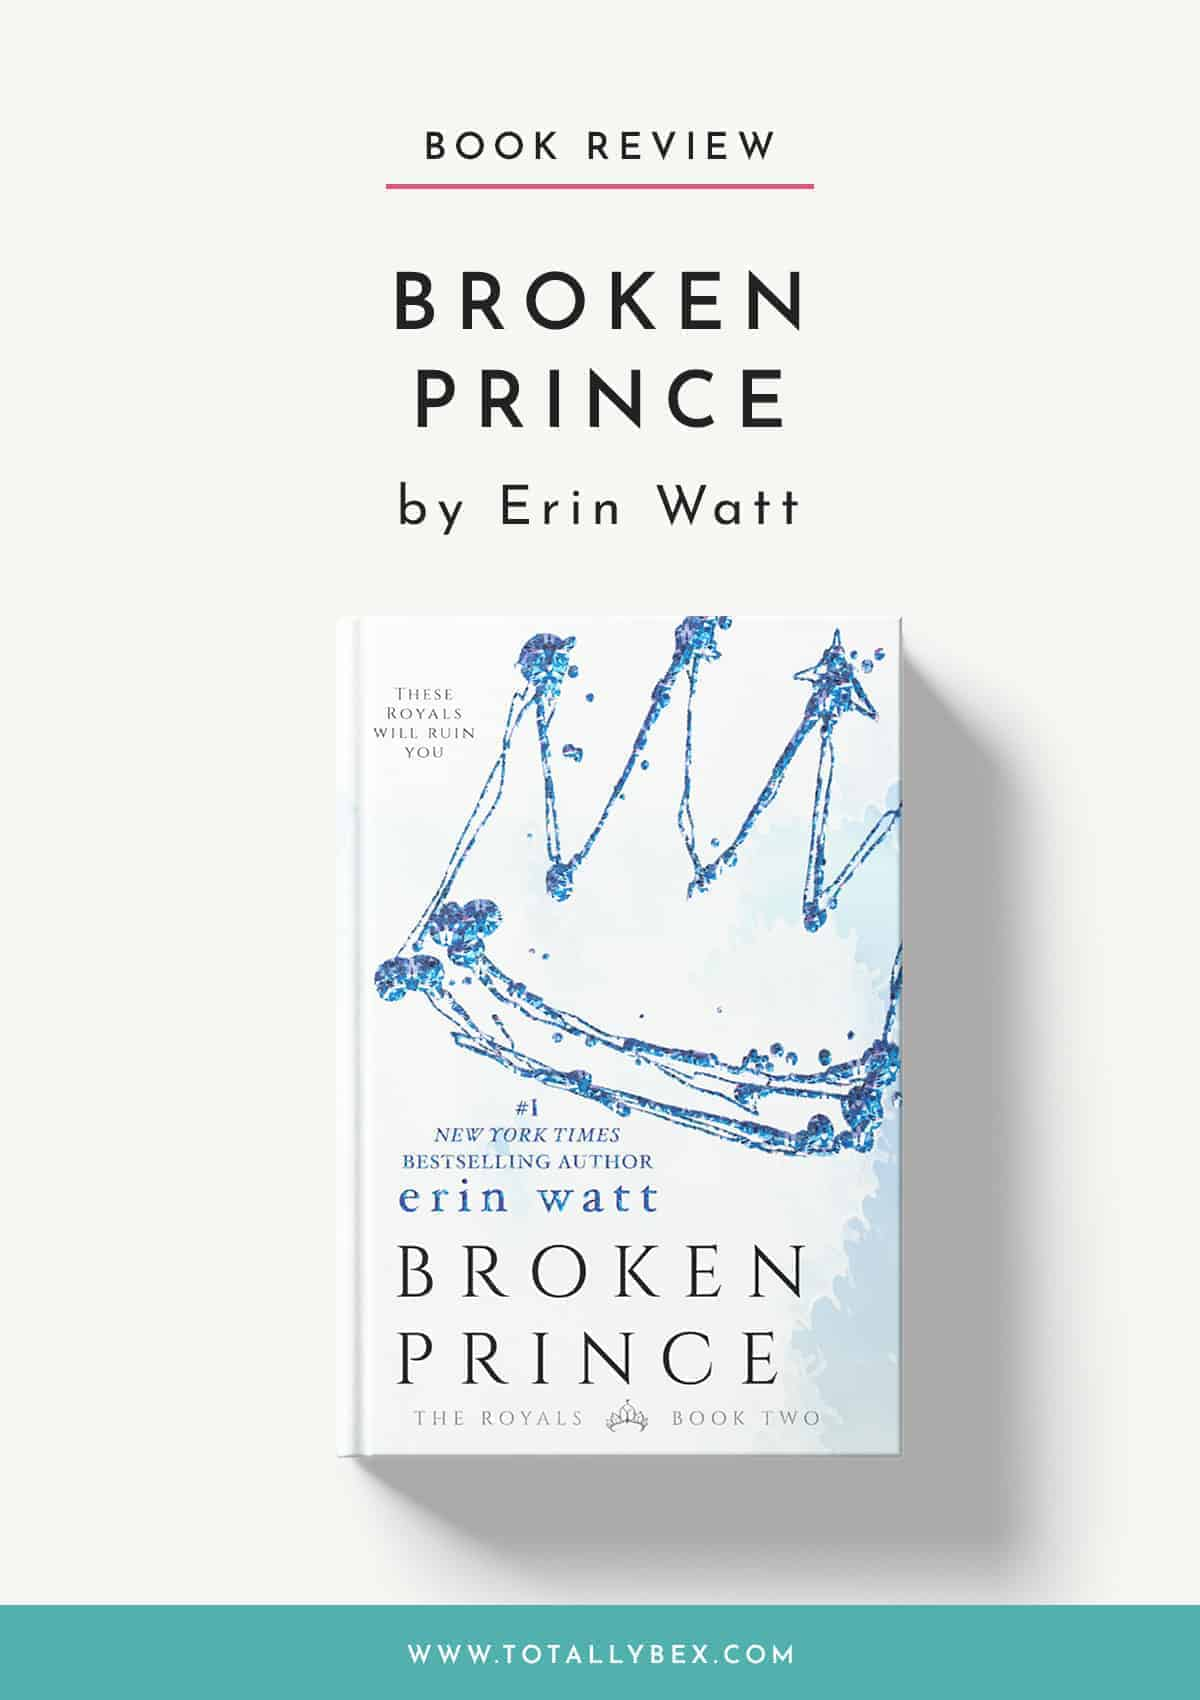 Broken Prince by Erin Watt-Book Review